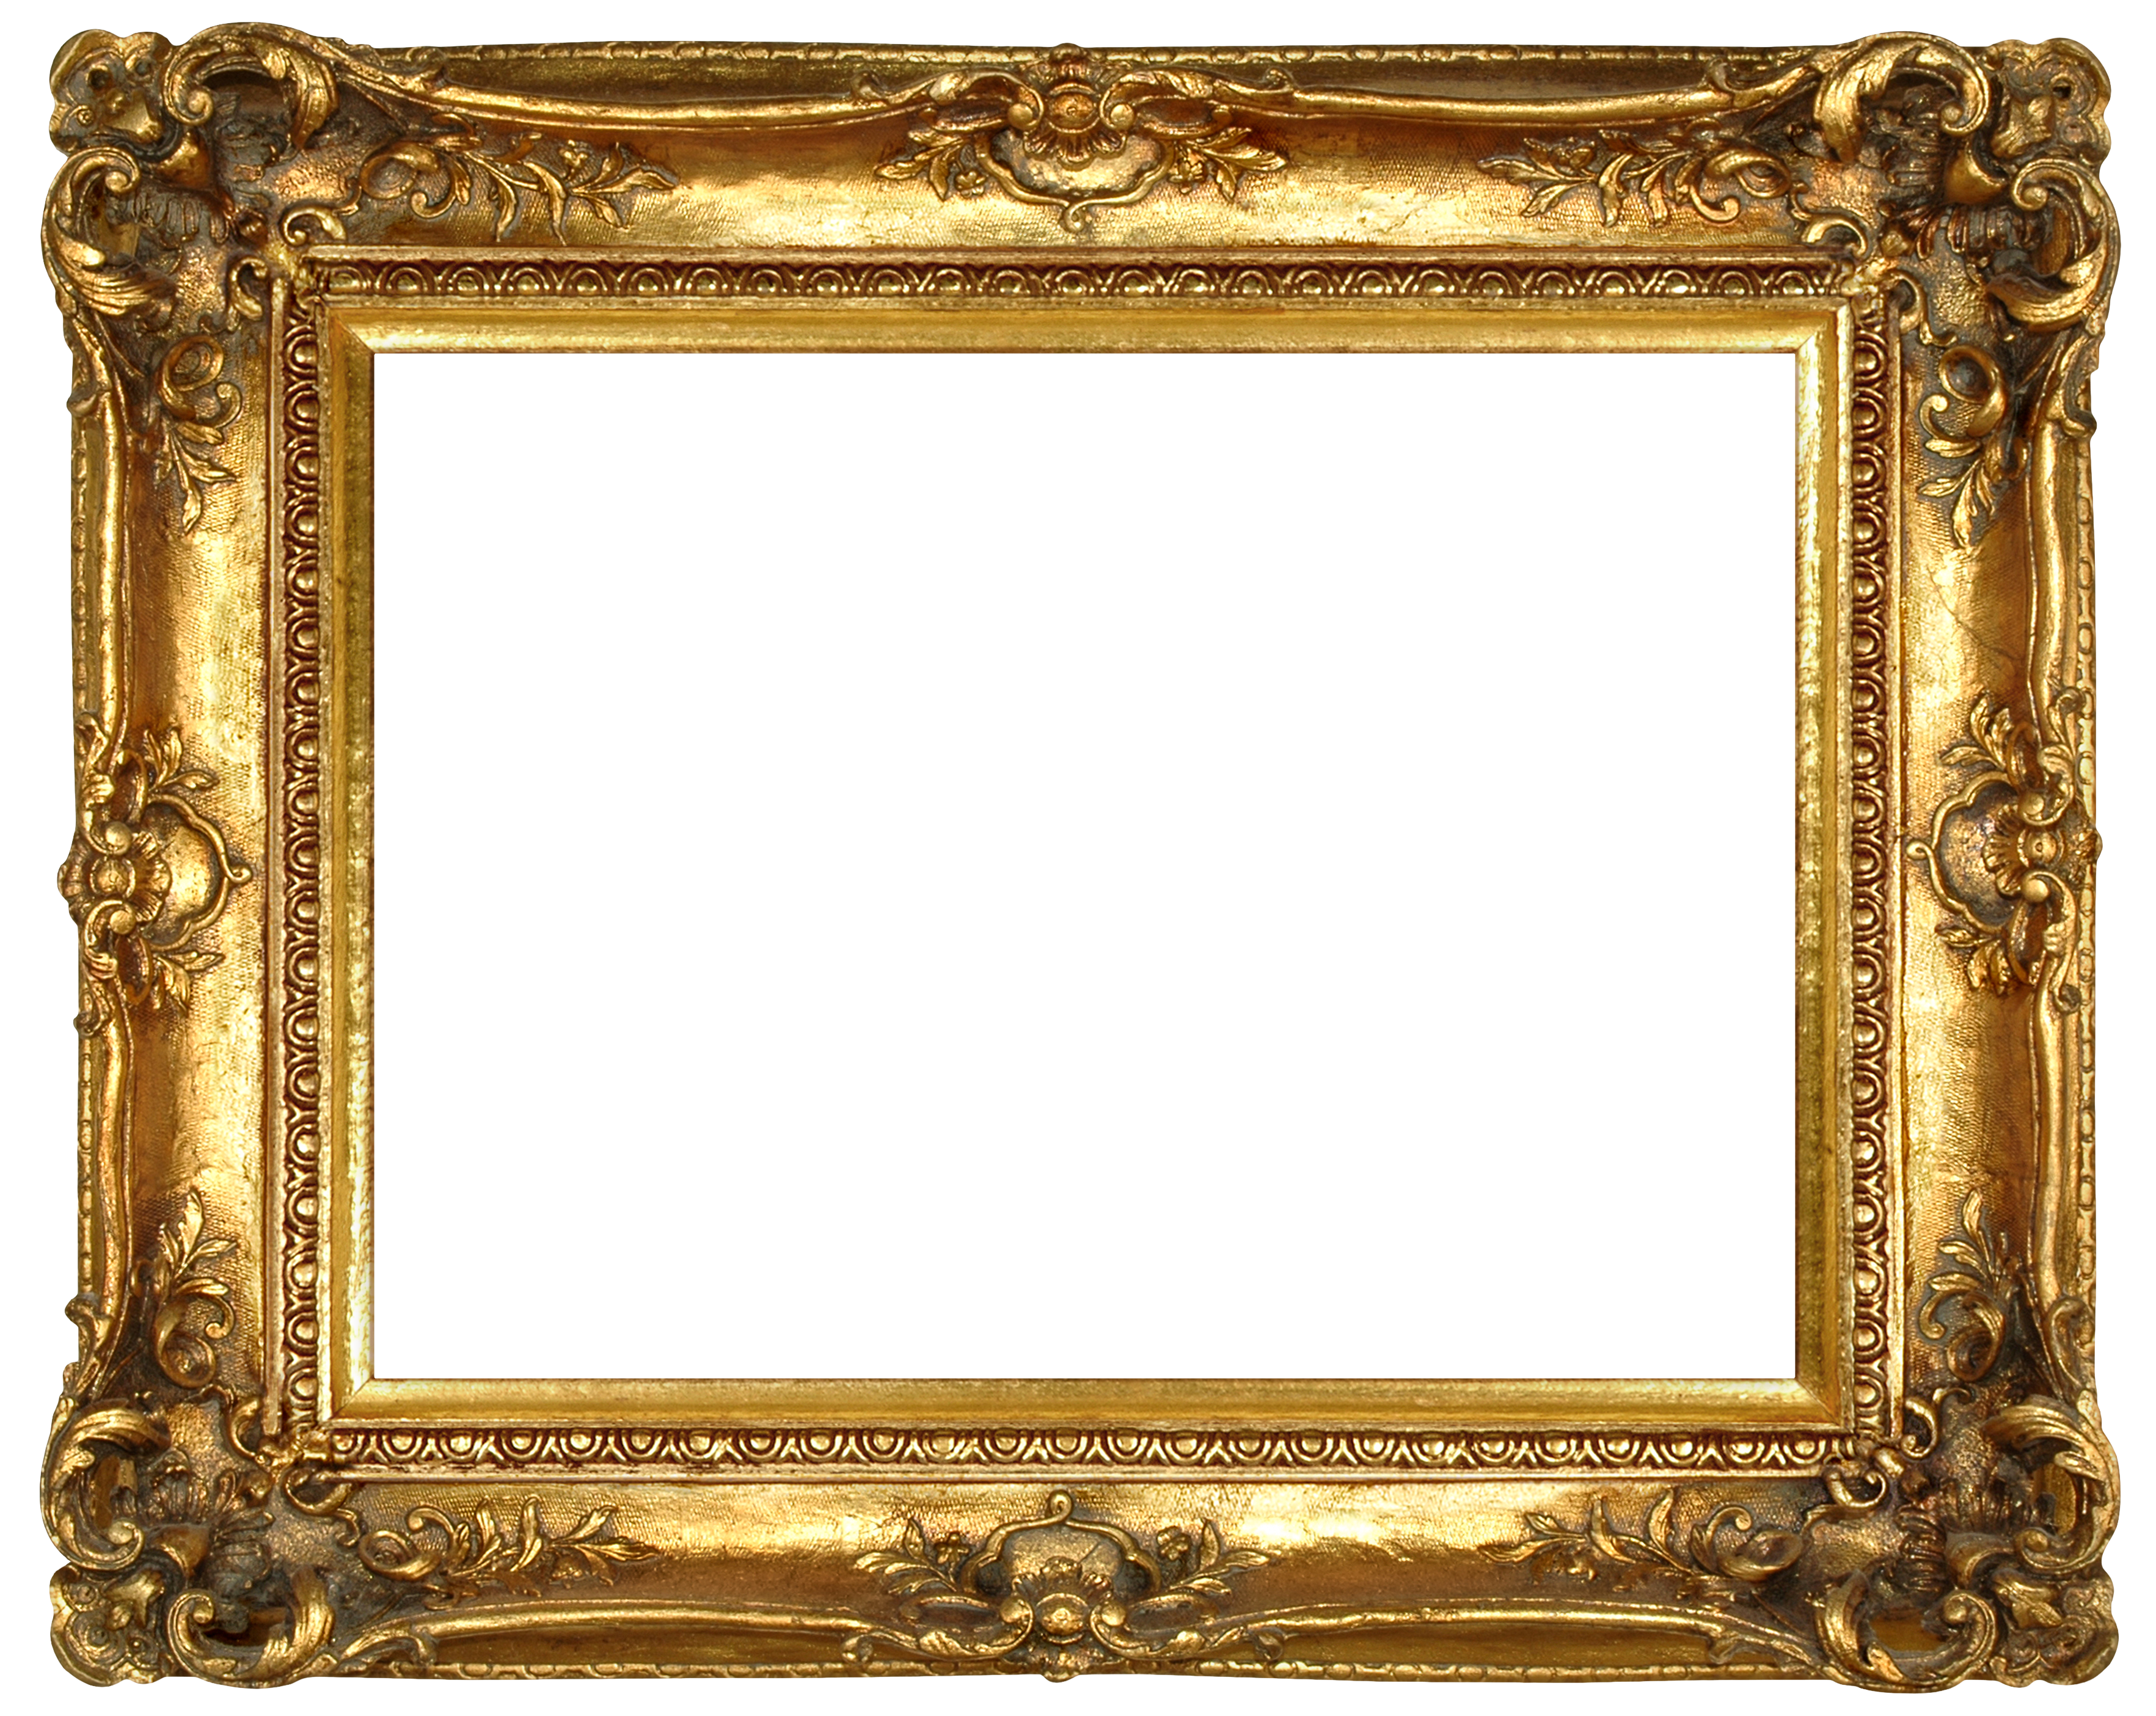 Classic Frame Transparent Png Image Gallery Yopriceville High Quality Images And Transparent Png Antique Picture Frames Classic Frame Custom Photo Frames